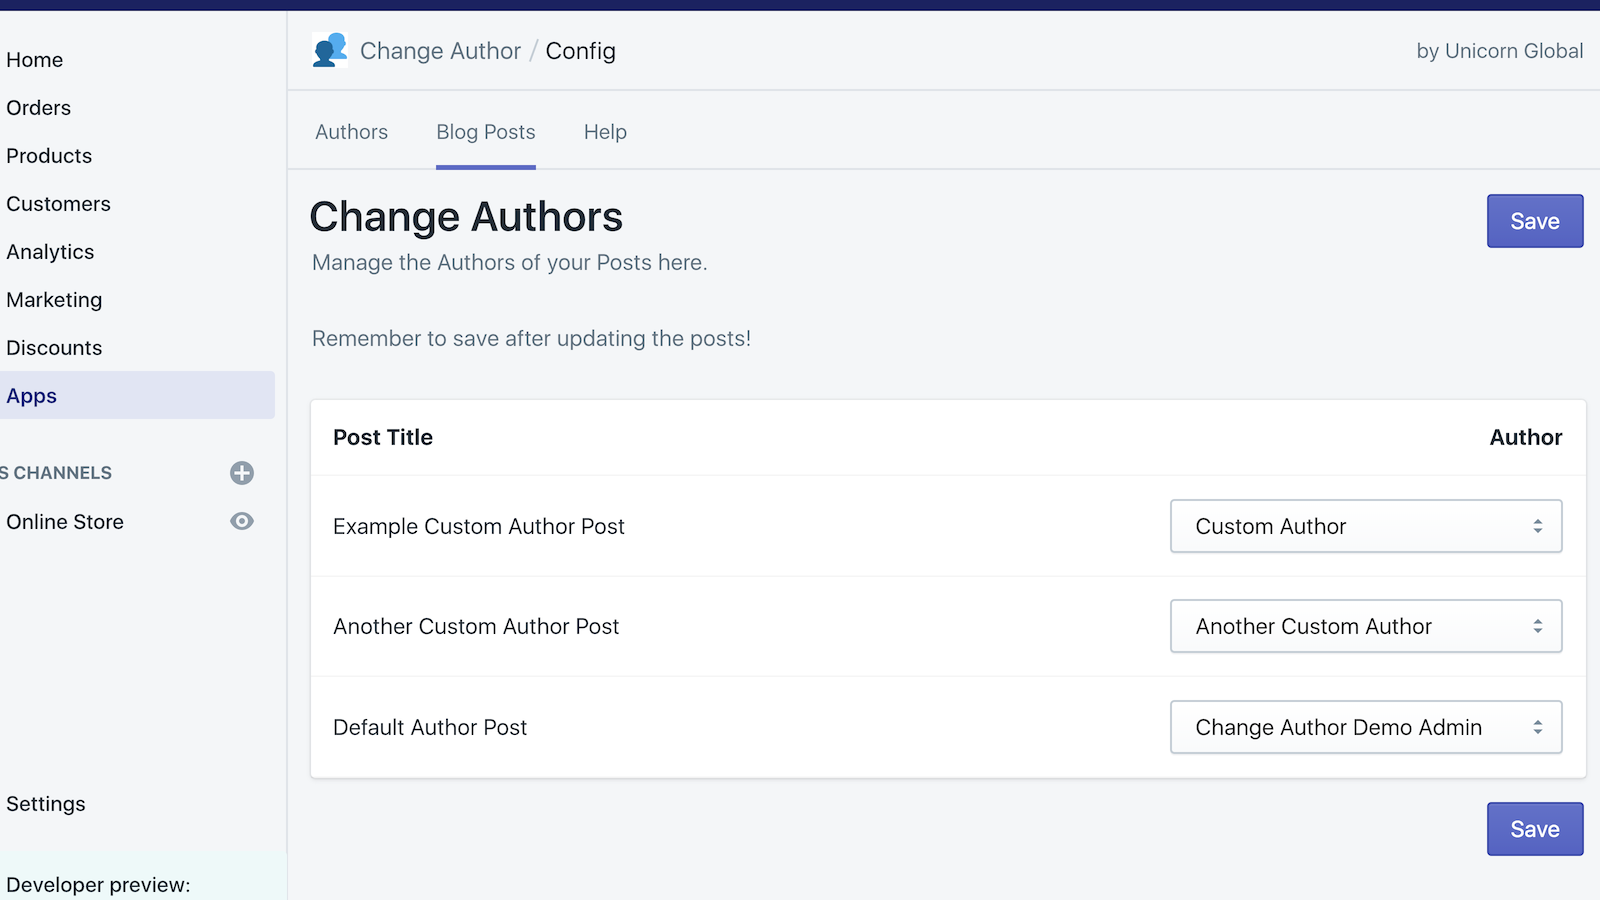 Change the author for any blog post